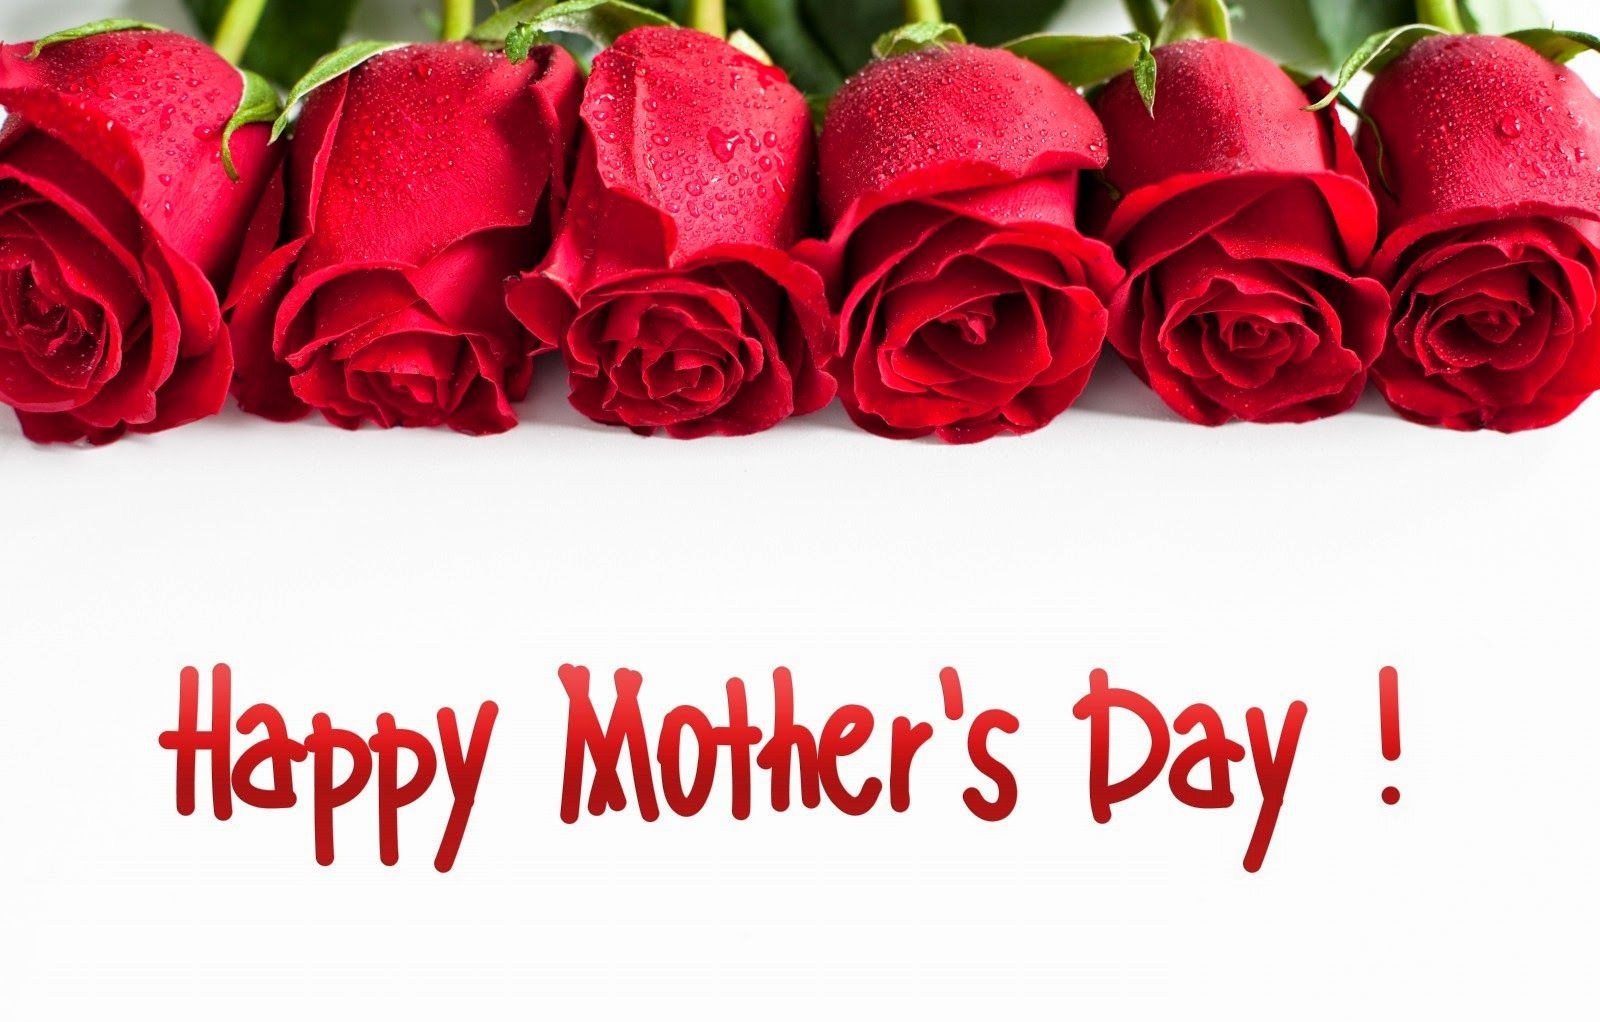 Happy Mothers Day To All Mothers Quotes  Wishing a Happy Mother s Day to all of the Moms and Mommys